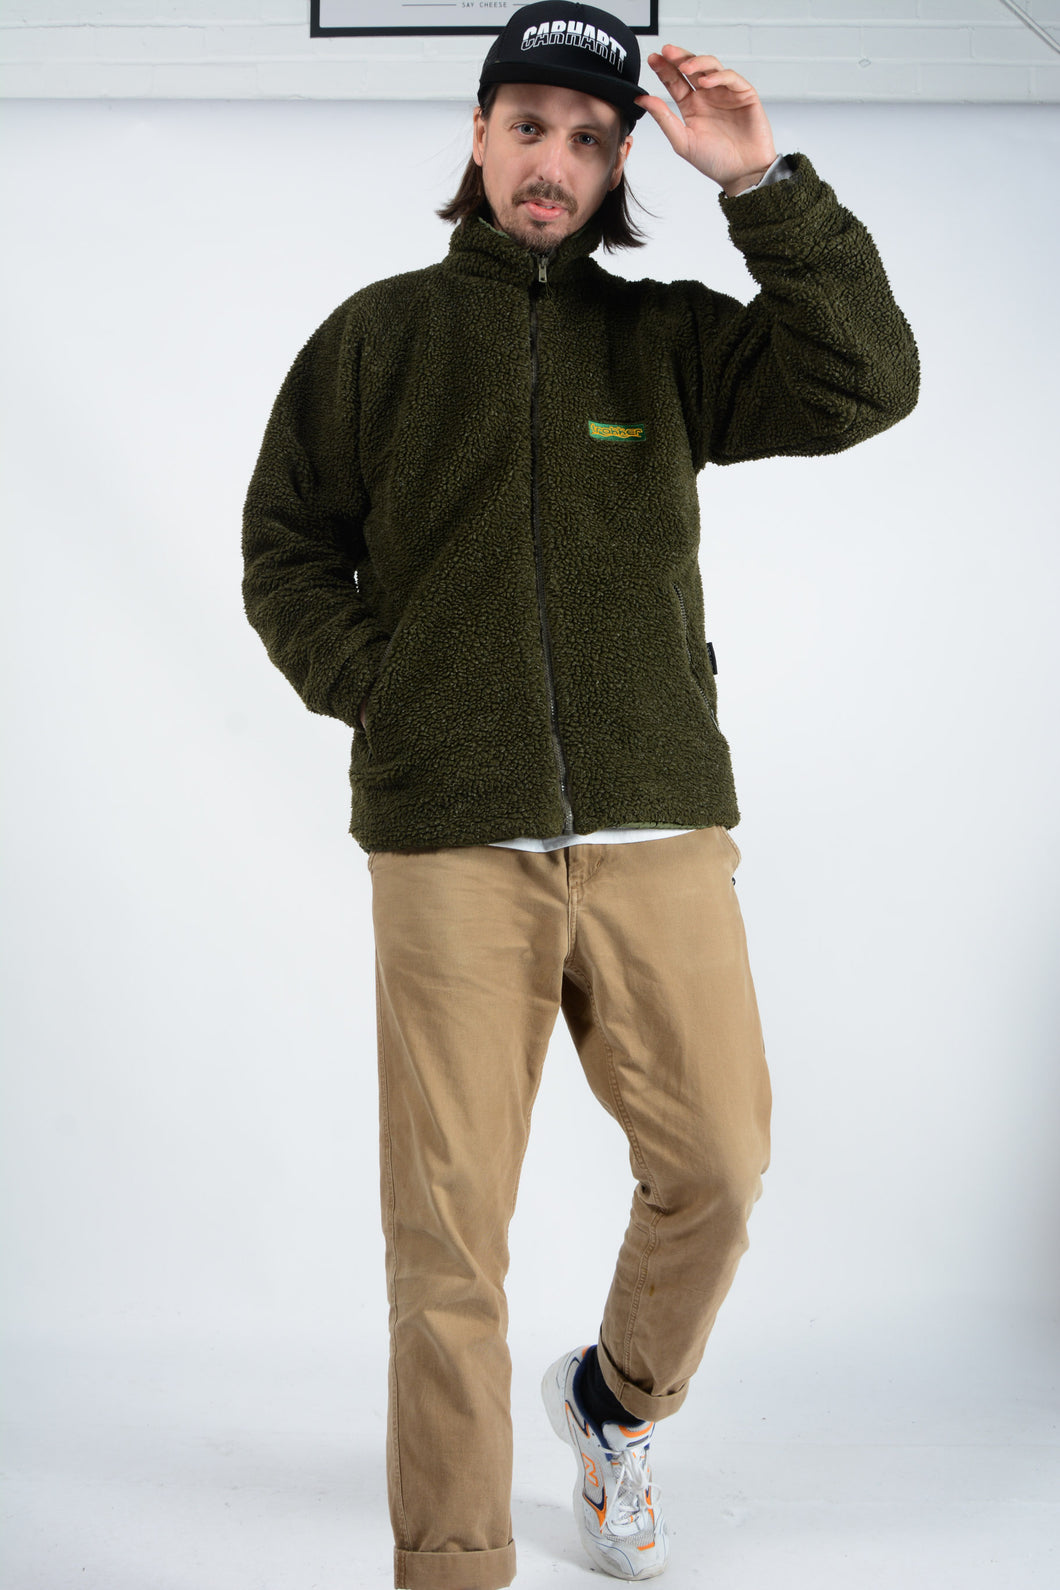 Vintage Shearling Fleece jacket in Green - L